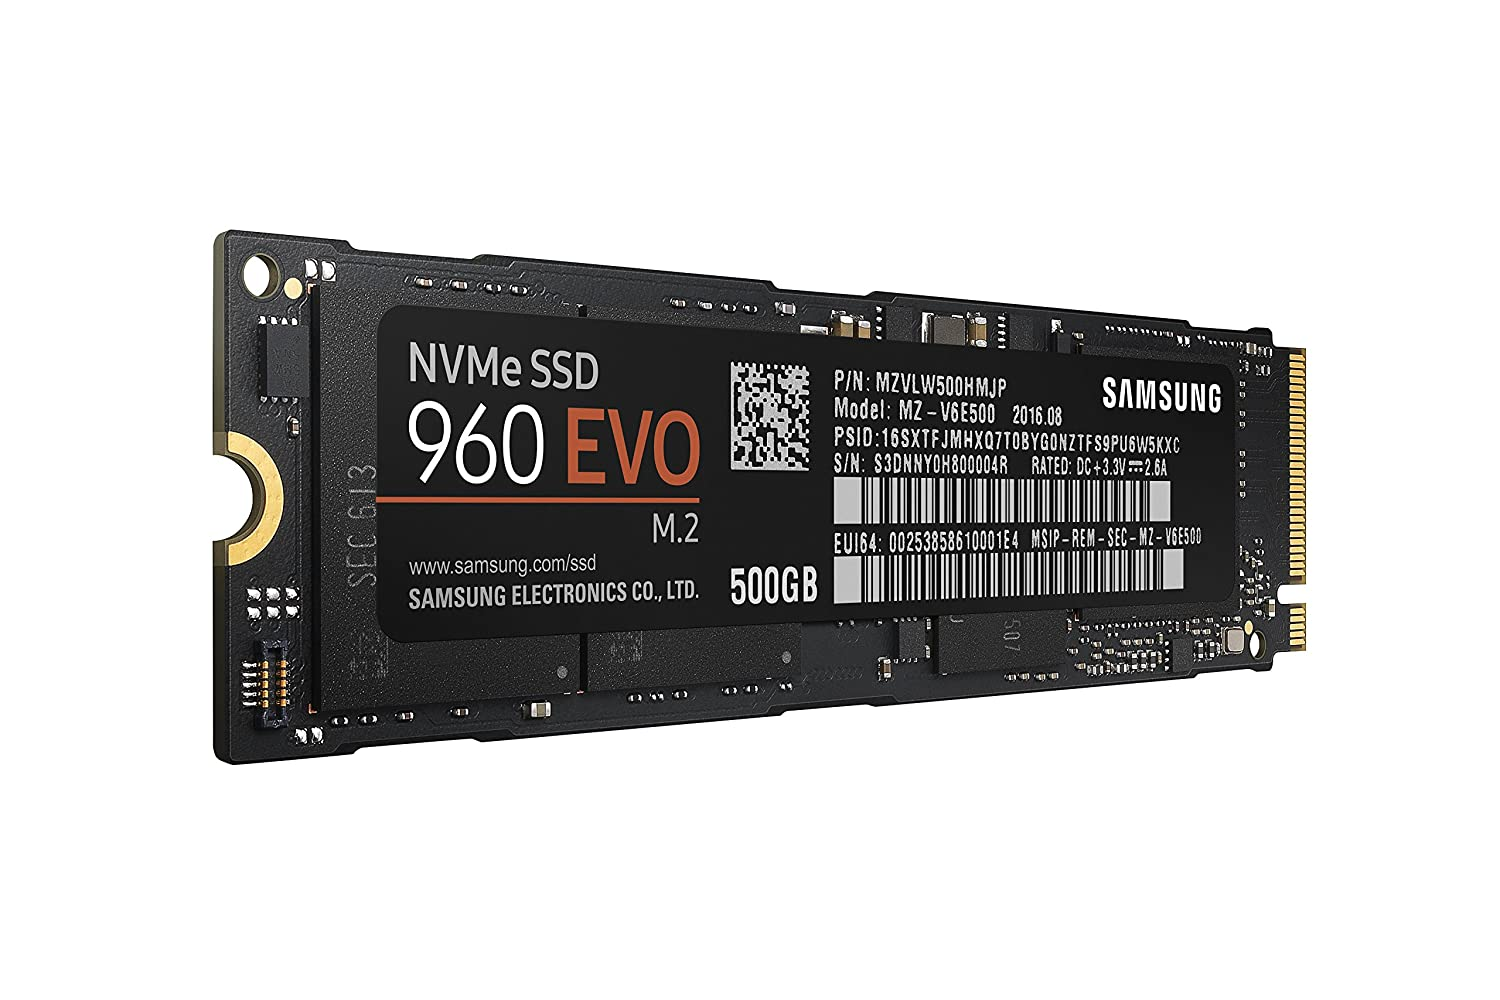 Samsung SSD 960 Evo 500GB Review